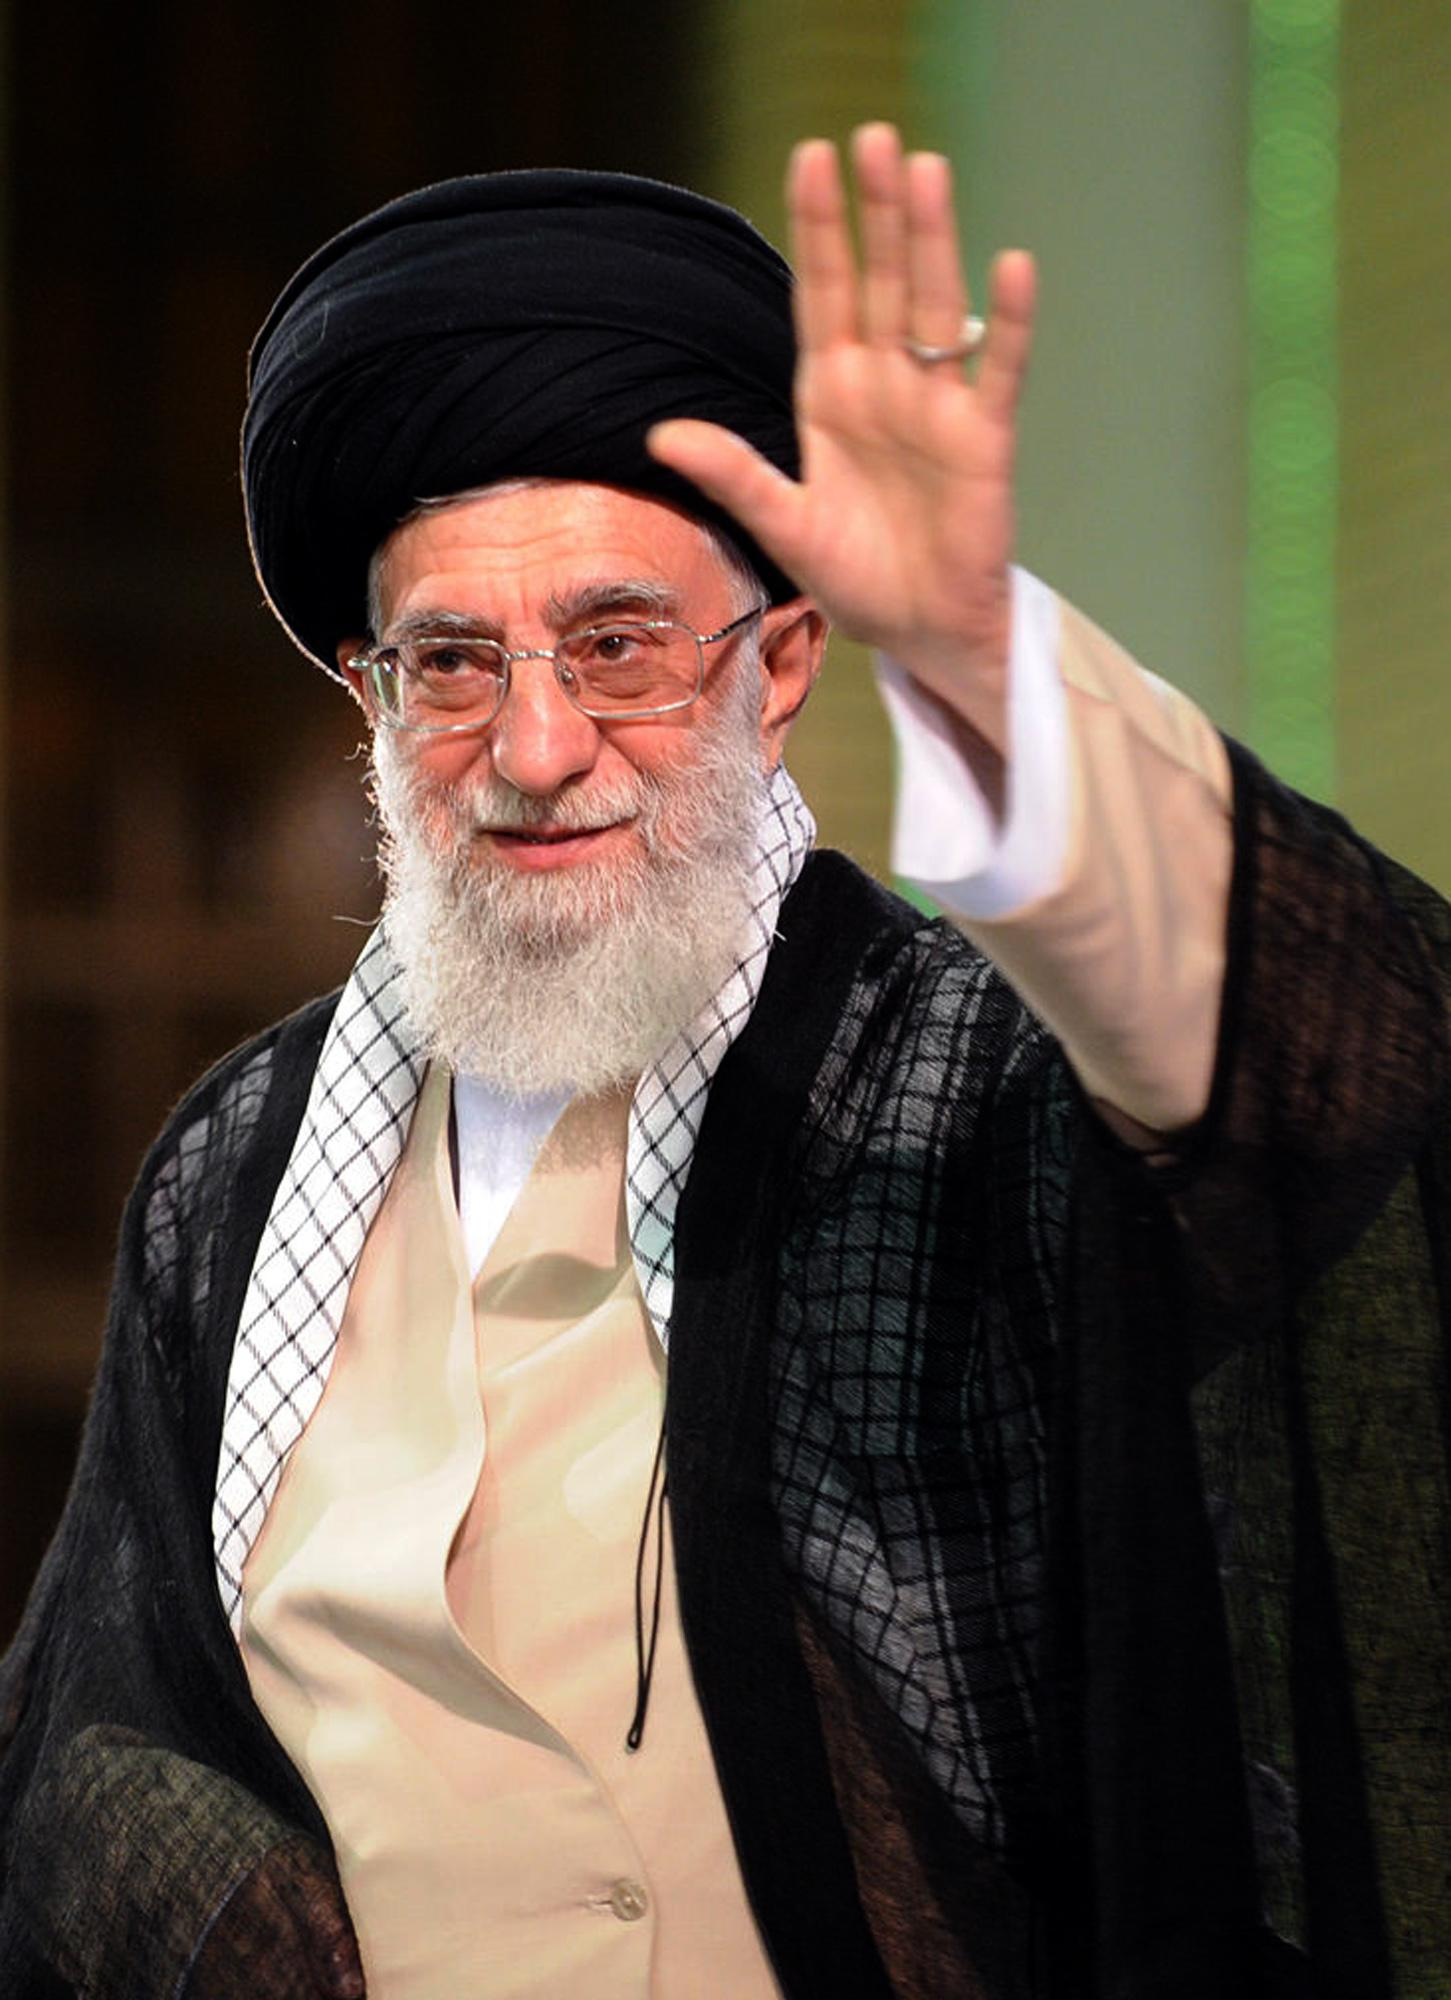 Ayatollah Ali Khamenei arrives for a meeting in Tehran on Sunday ahead of his prostate operation on Monday (AFP Photo/)